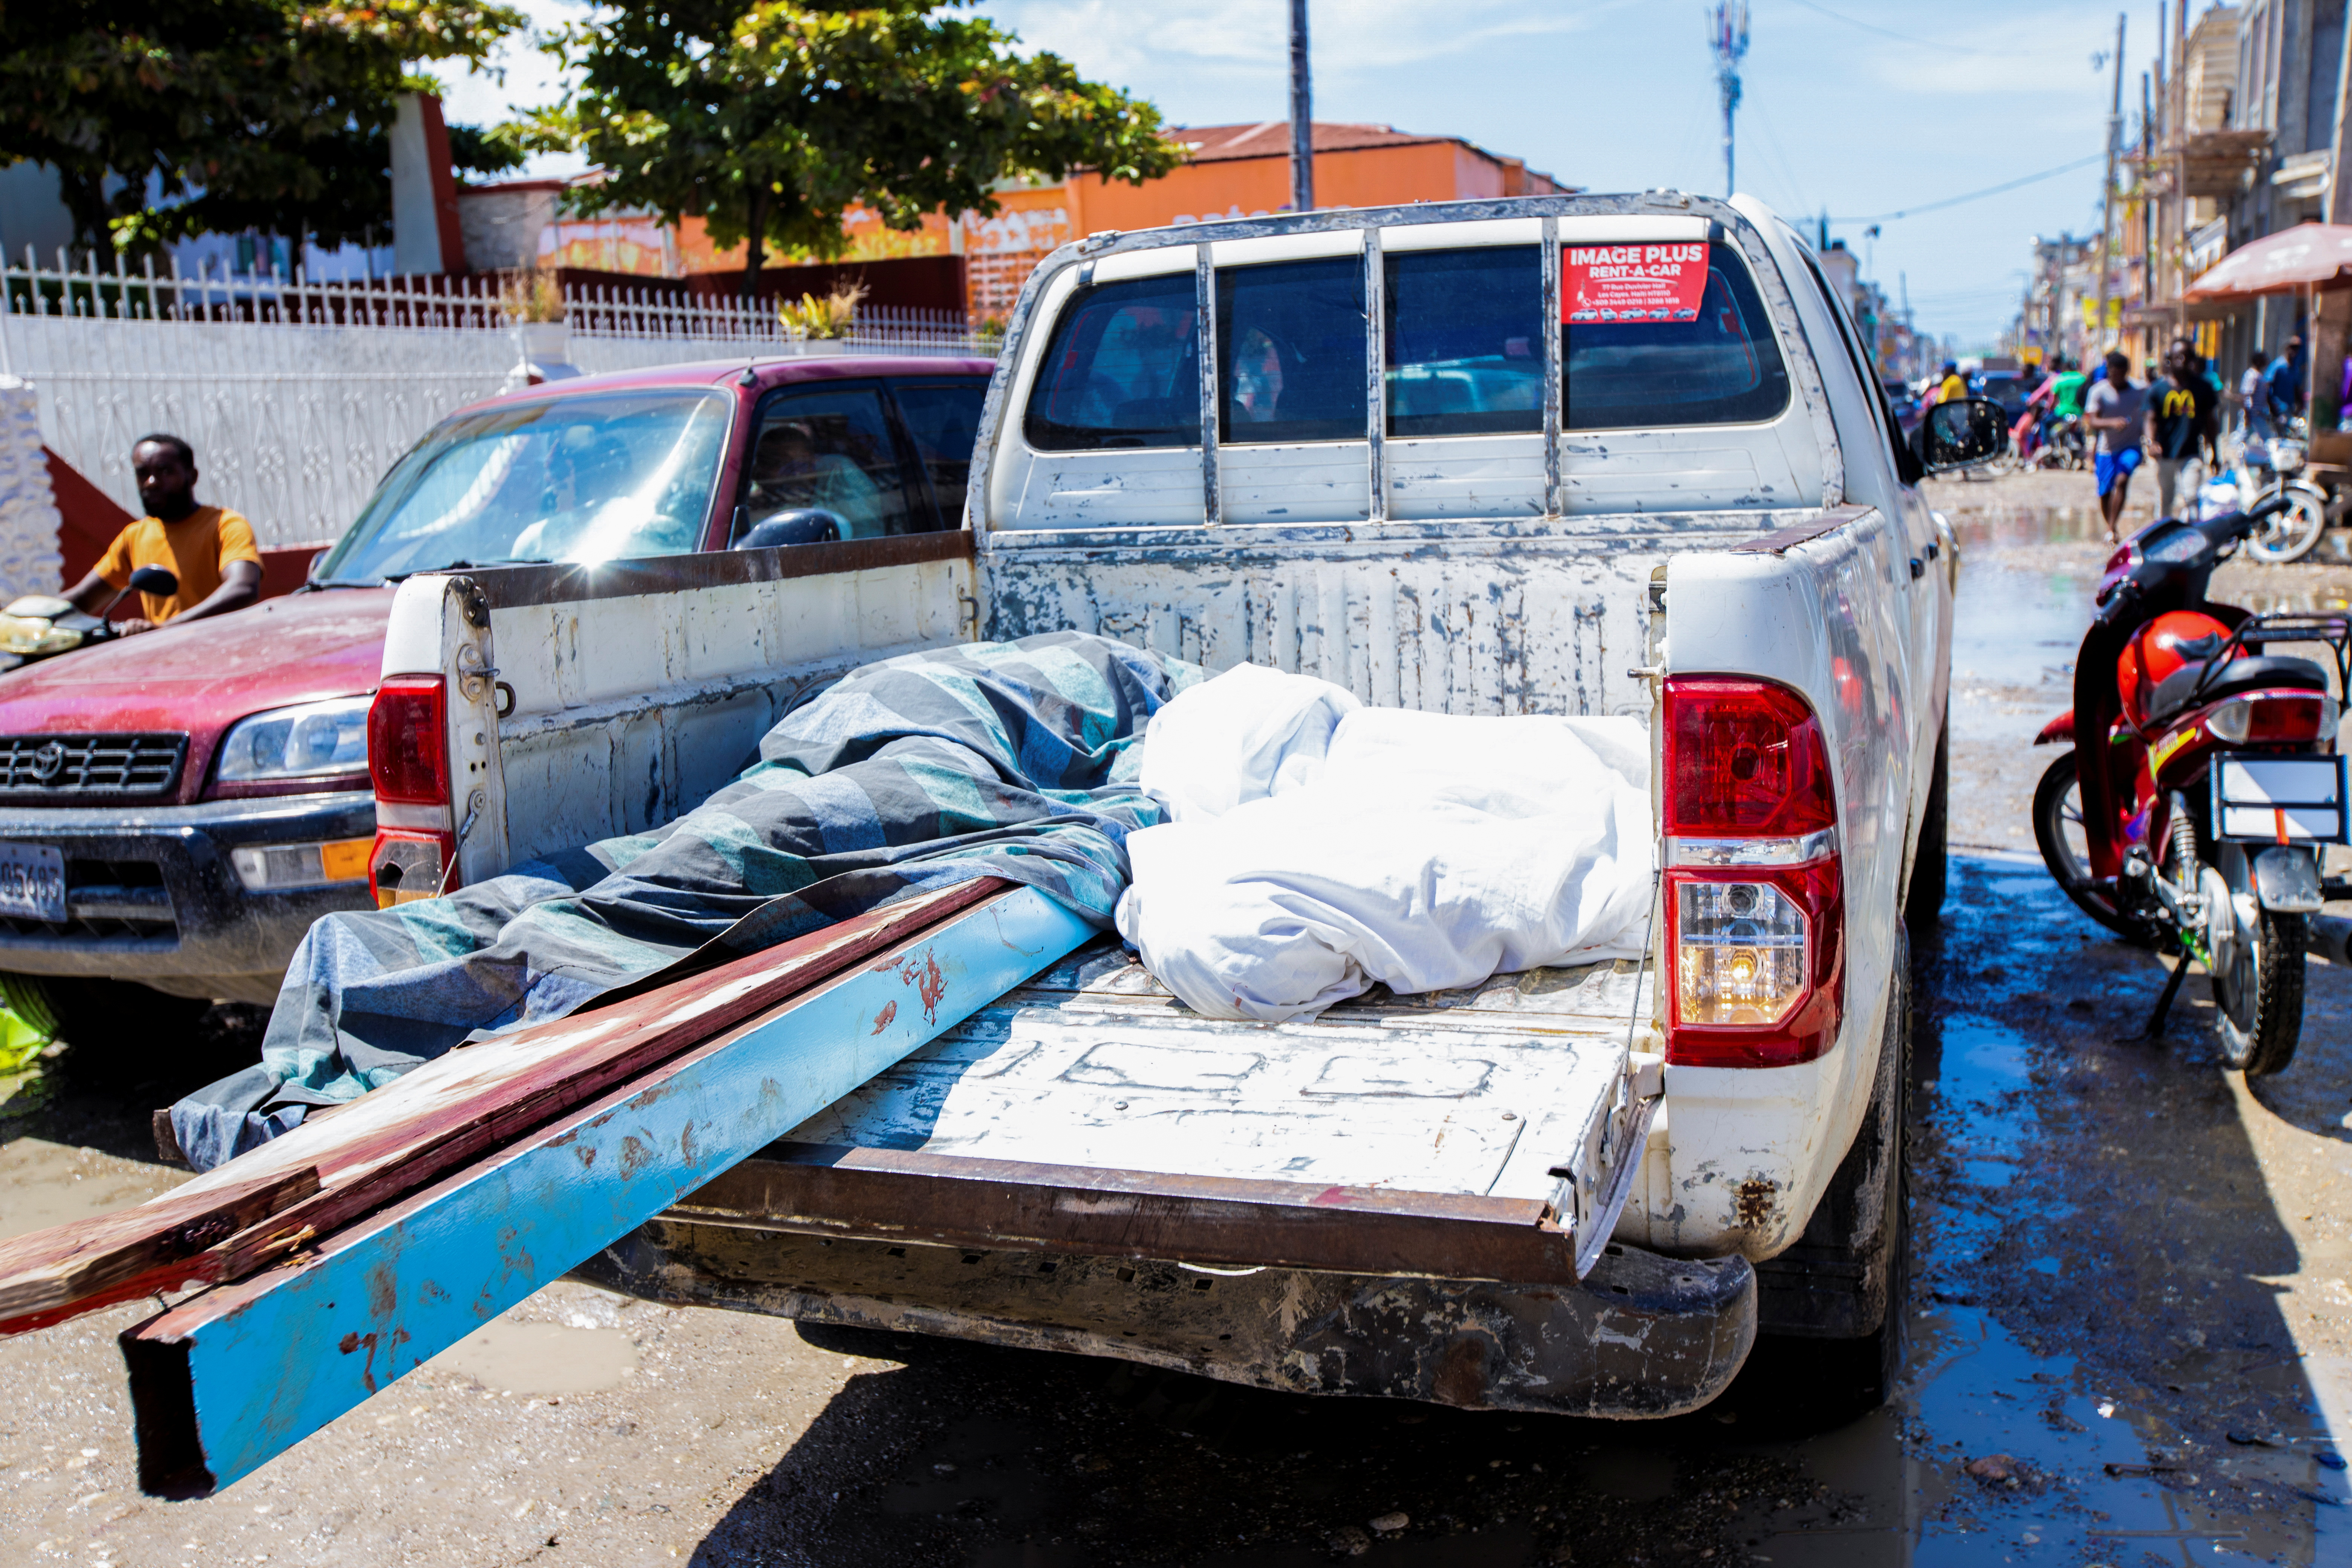 The bodies of two persons lie on the bed of a truck following a 7.2 magnitude earthquake in Les Cayes, Haiti August 14, 2021. REUTERS/Ralph Tedy Erol NO RESALES. NO ARCHIVES